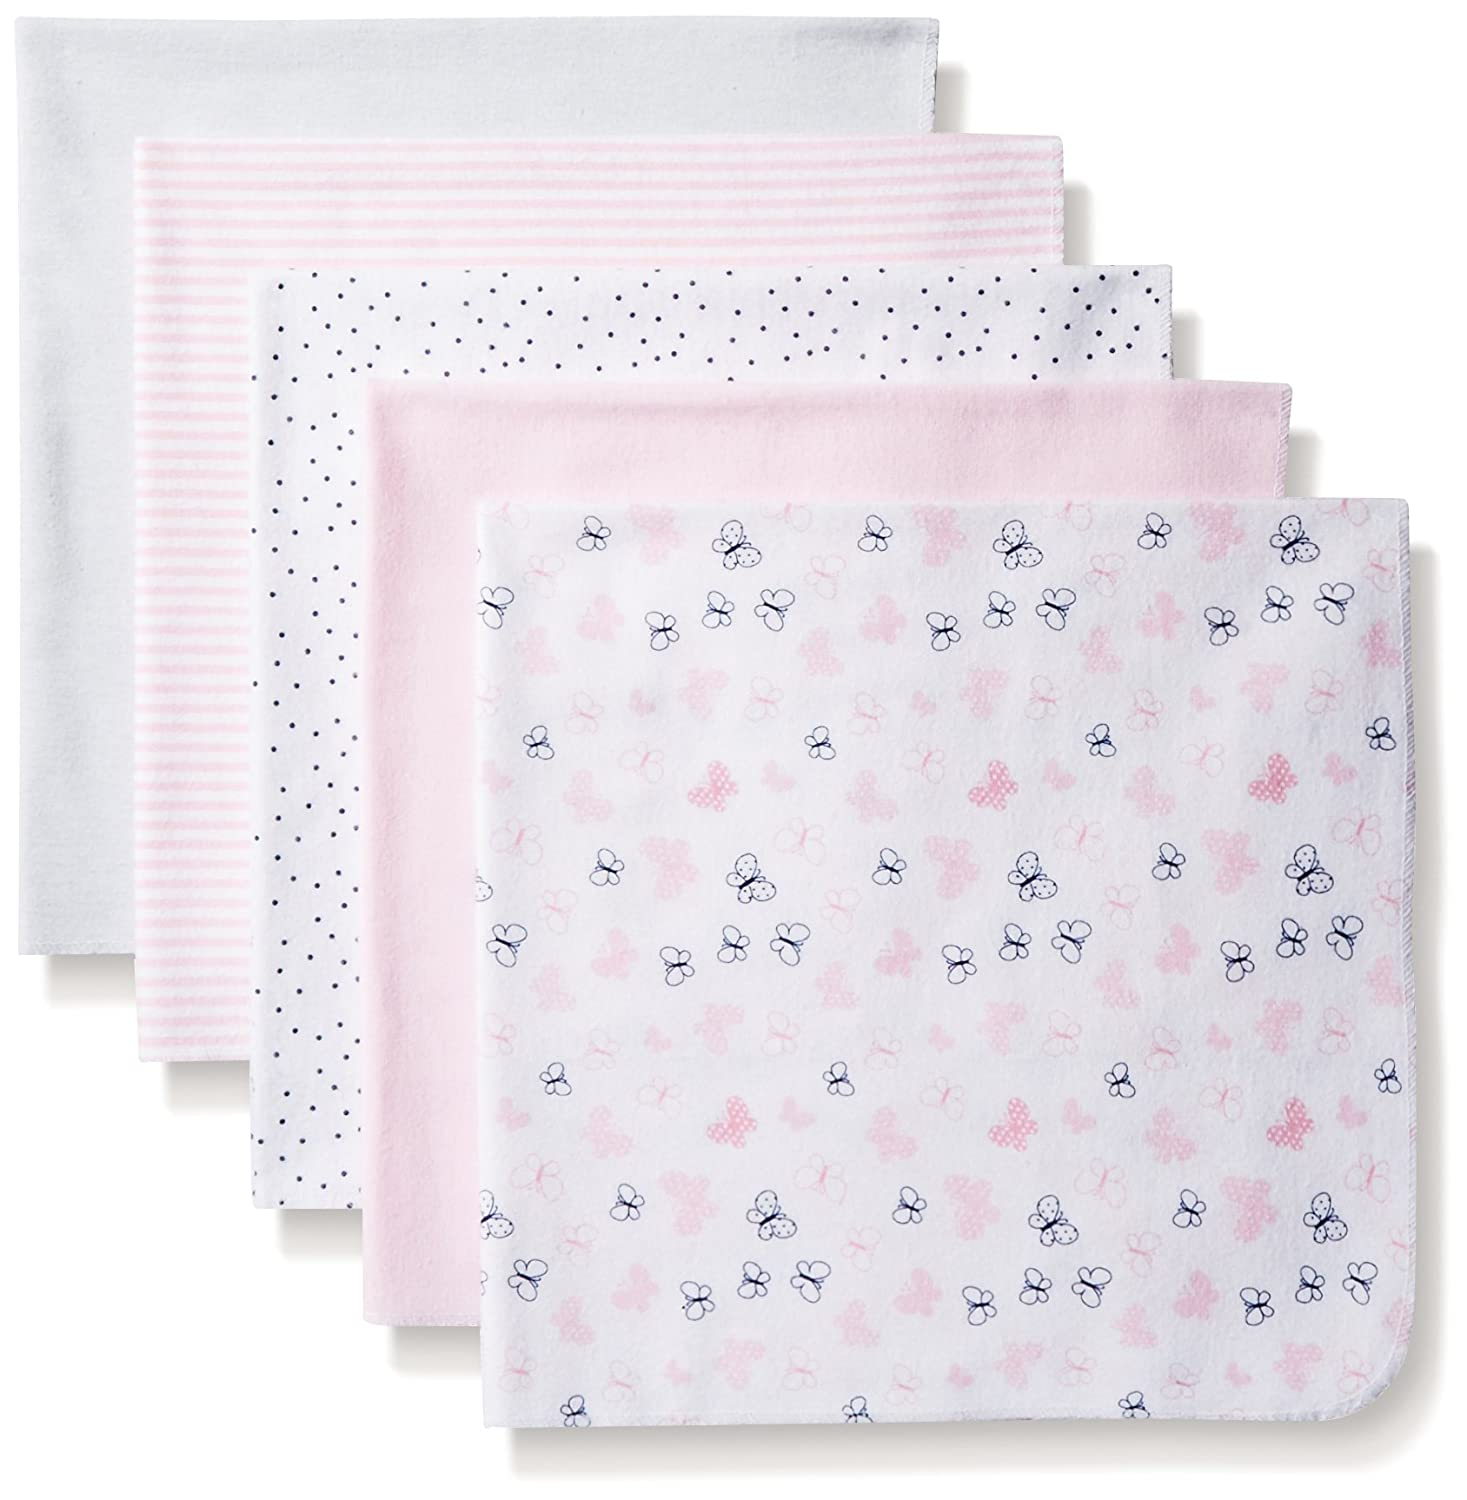 BON BEBE Baby Butterfly Assorted 5 Pack Receiving Blankets, Pink Hearts/Butterflies, New Born BM401G